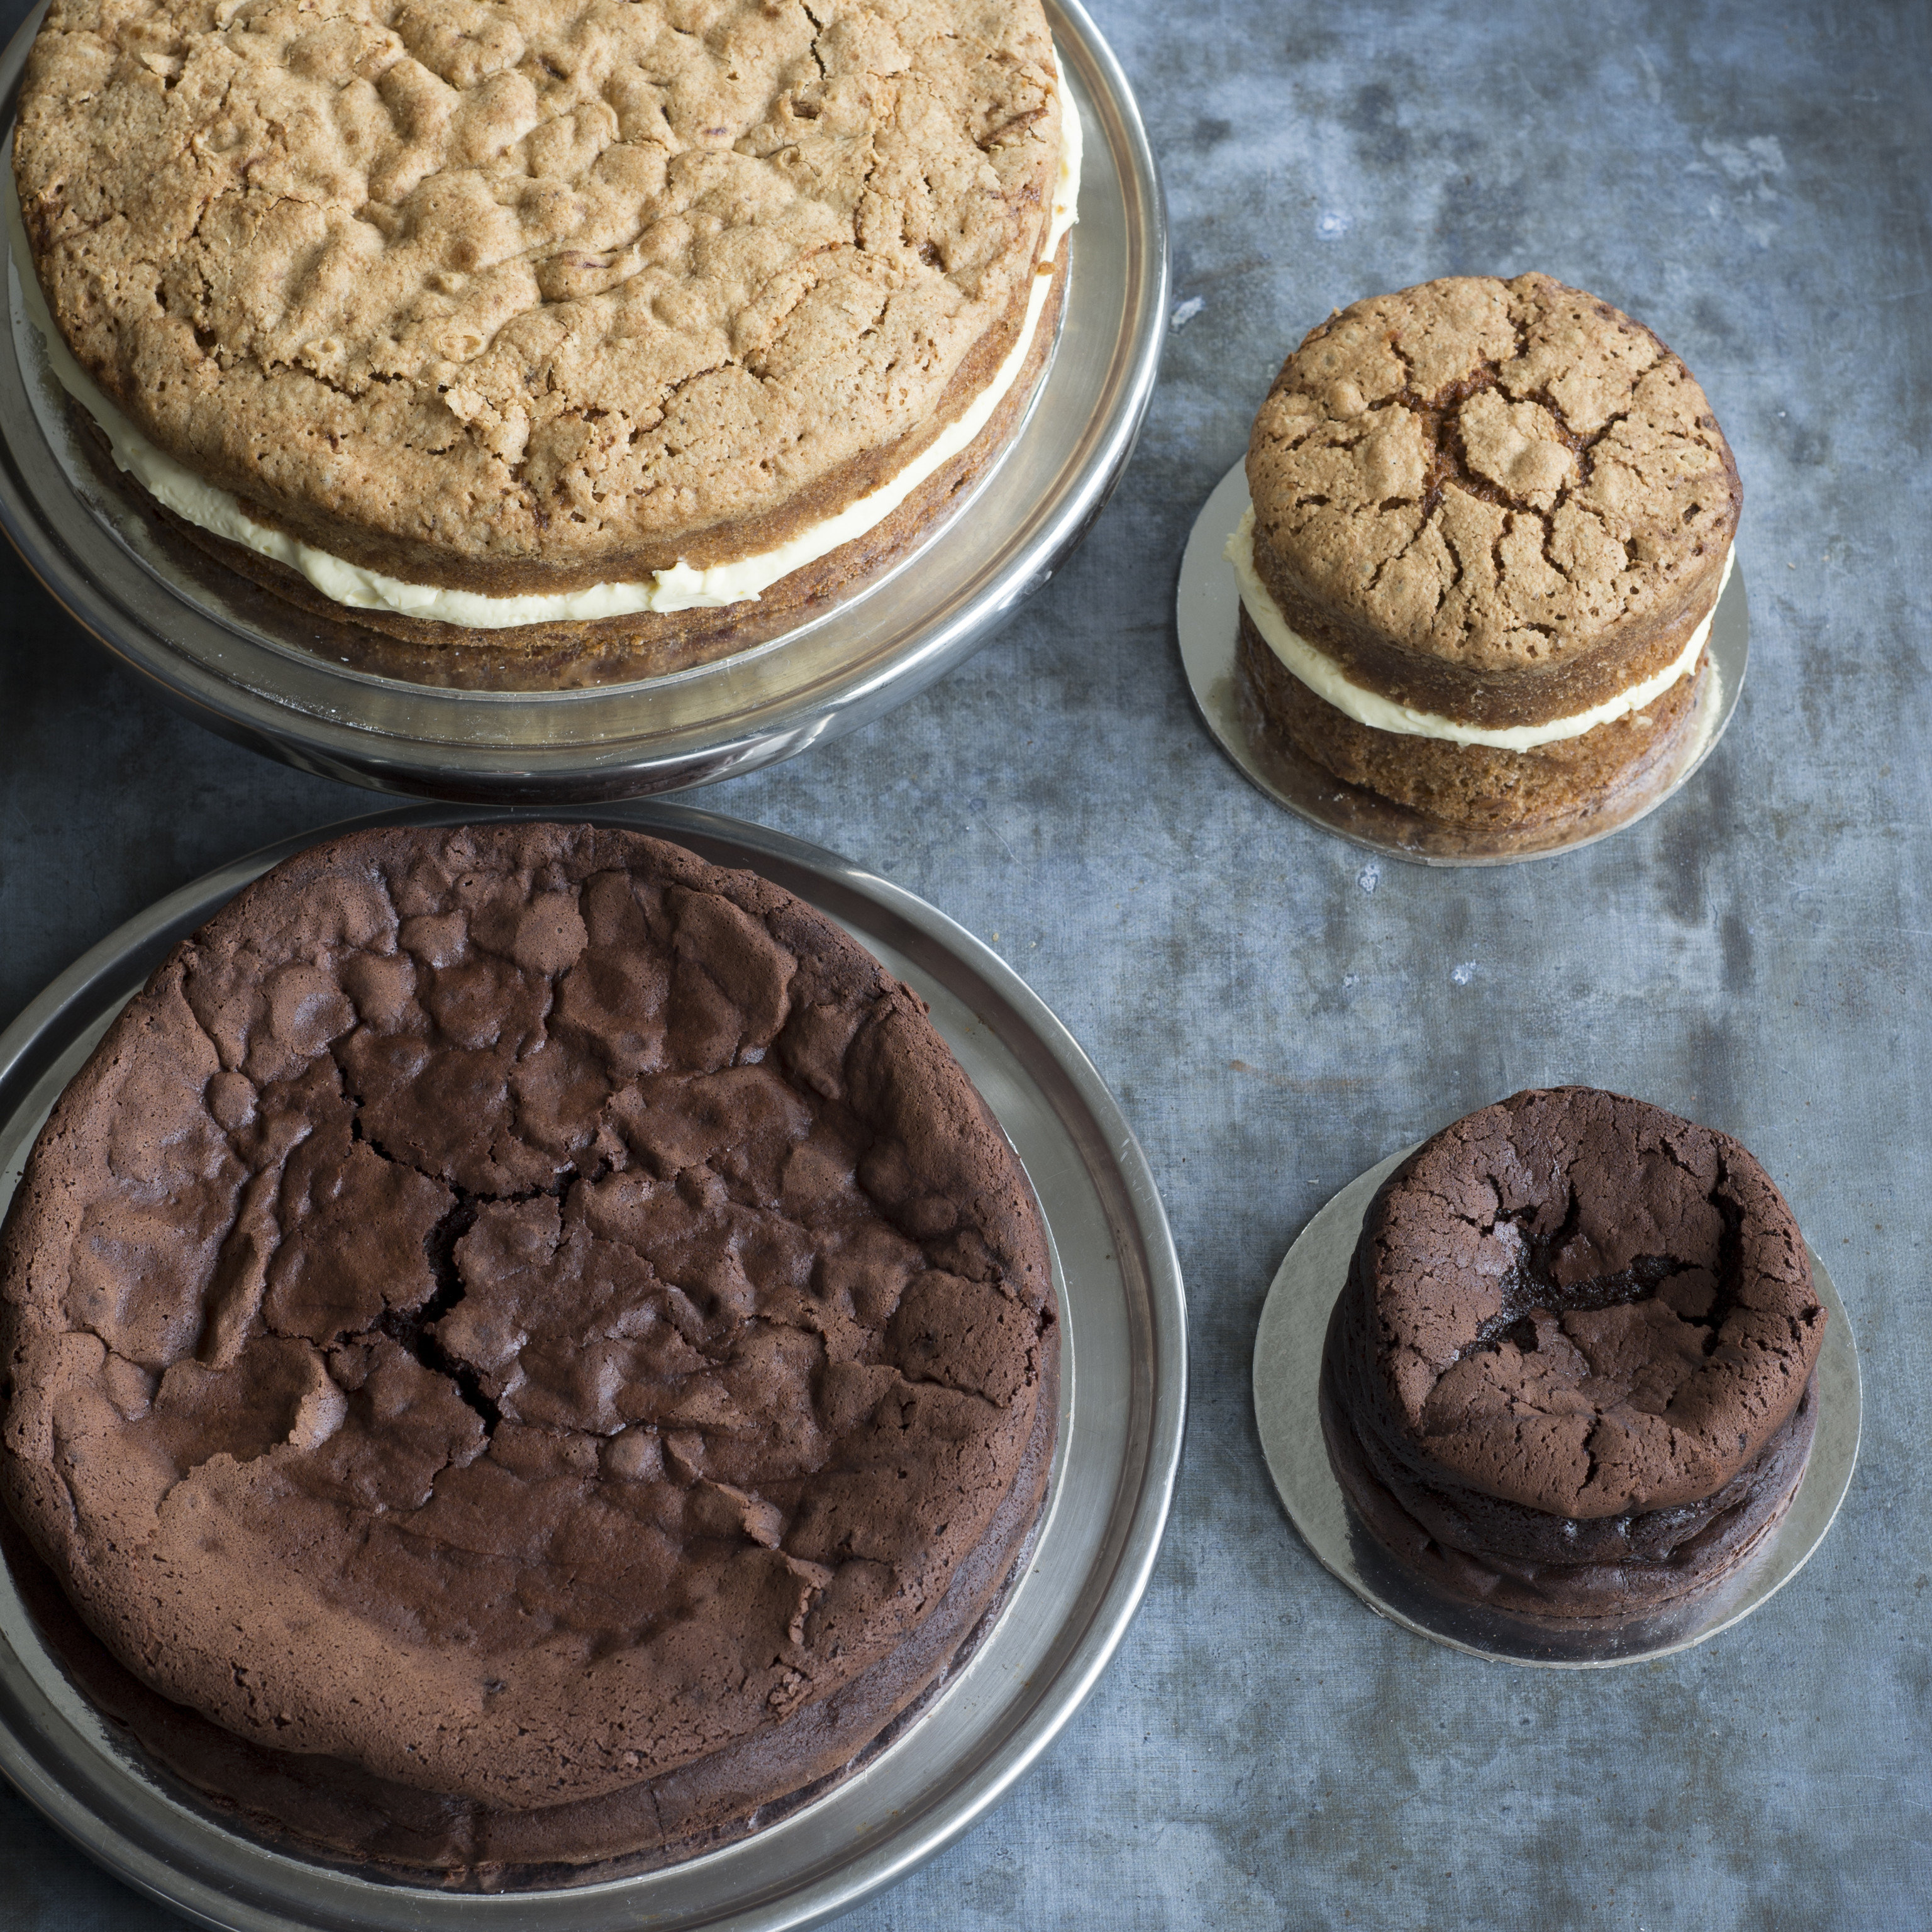 Trip Ideas food plate dessert chocolate ice cream dish chocolate baked goods cookies and crackers spice snack food chocolate brownie chocolate truffle baking chocolate cake cookie produce icing several